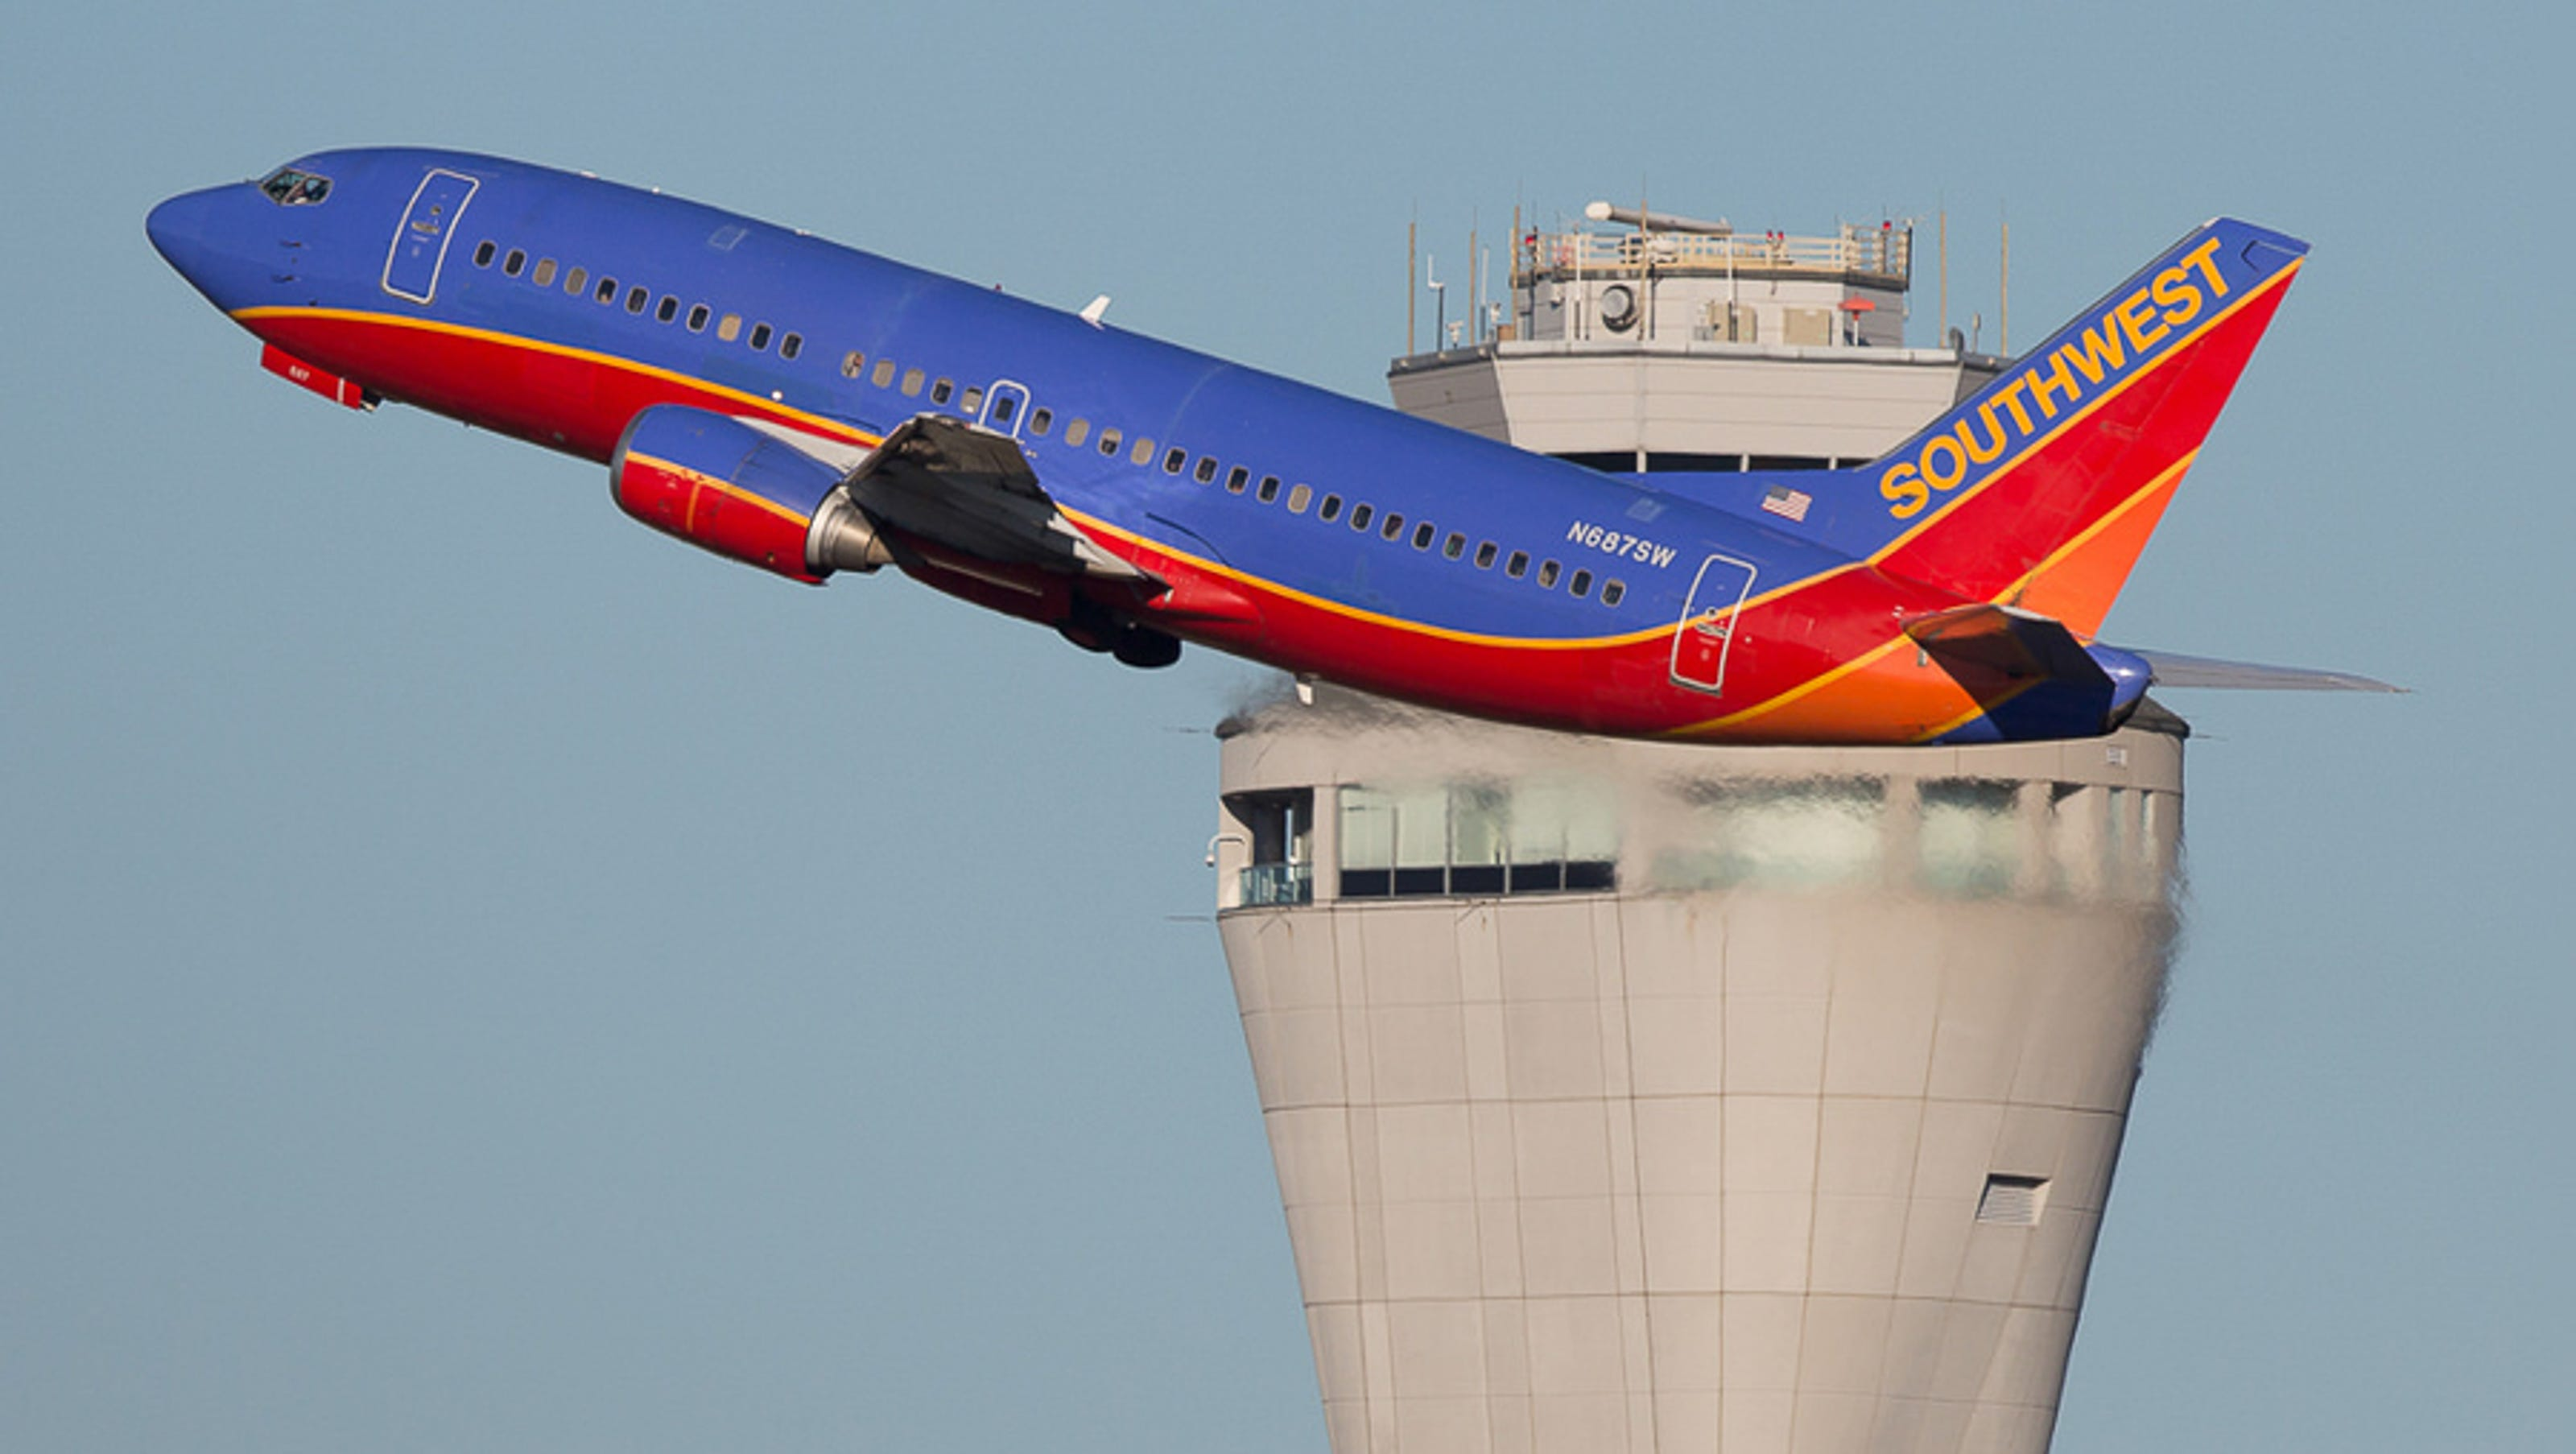 southwest schedule update: what routes are being added, dropped?